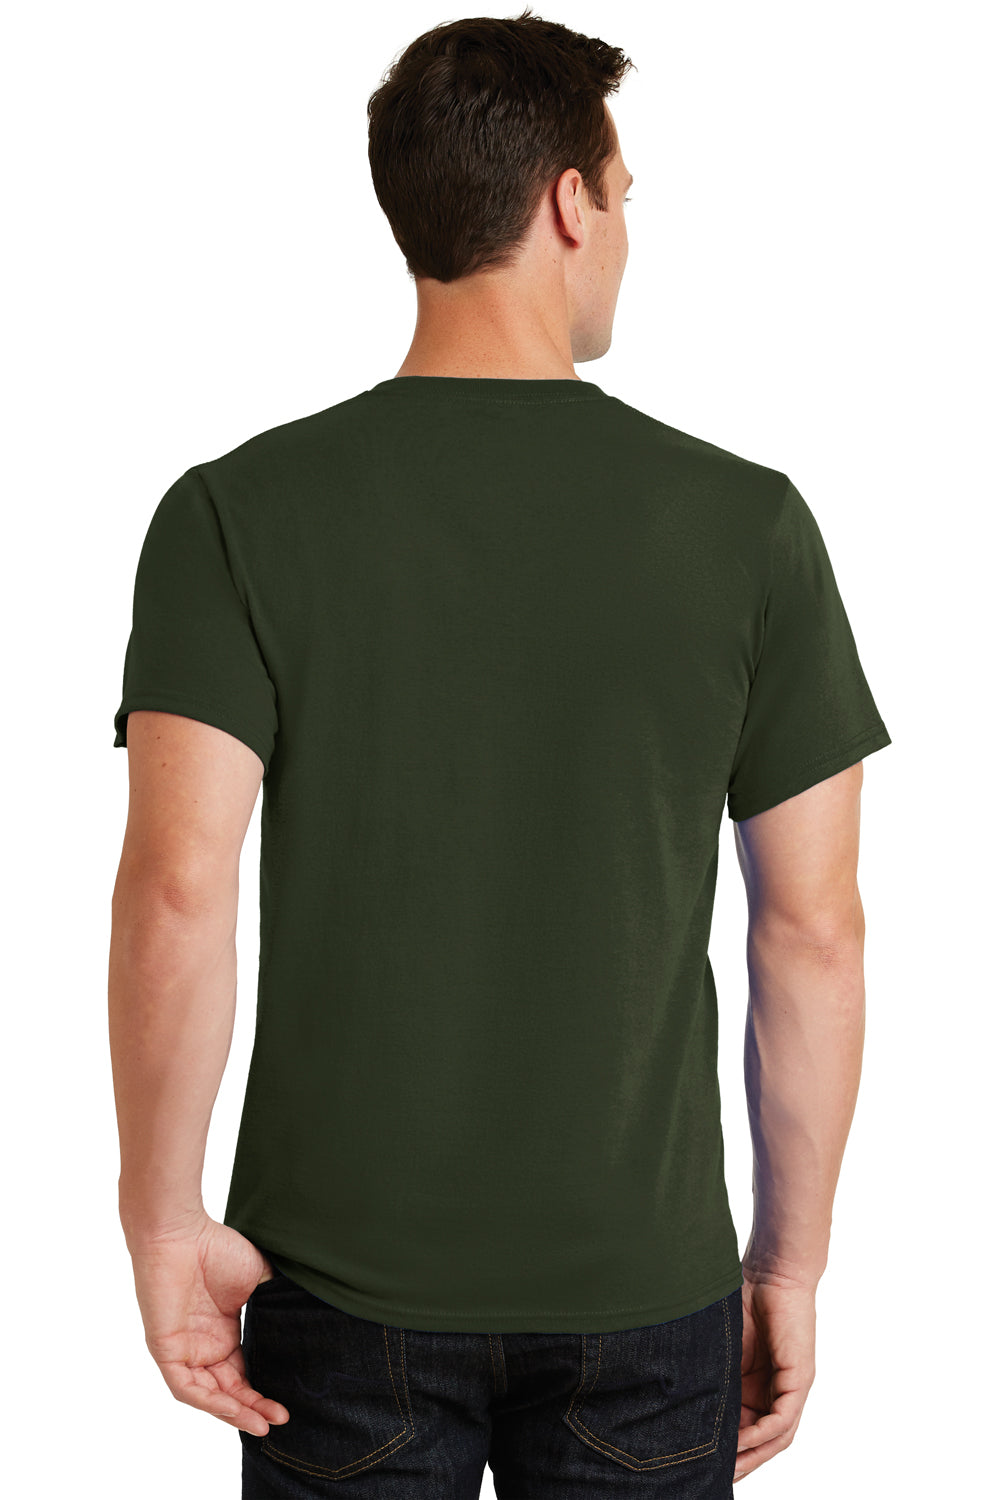 Port & Company PC61 Mens Essential Short Sleeve Crewneck T-Shirt Olive Green Back